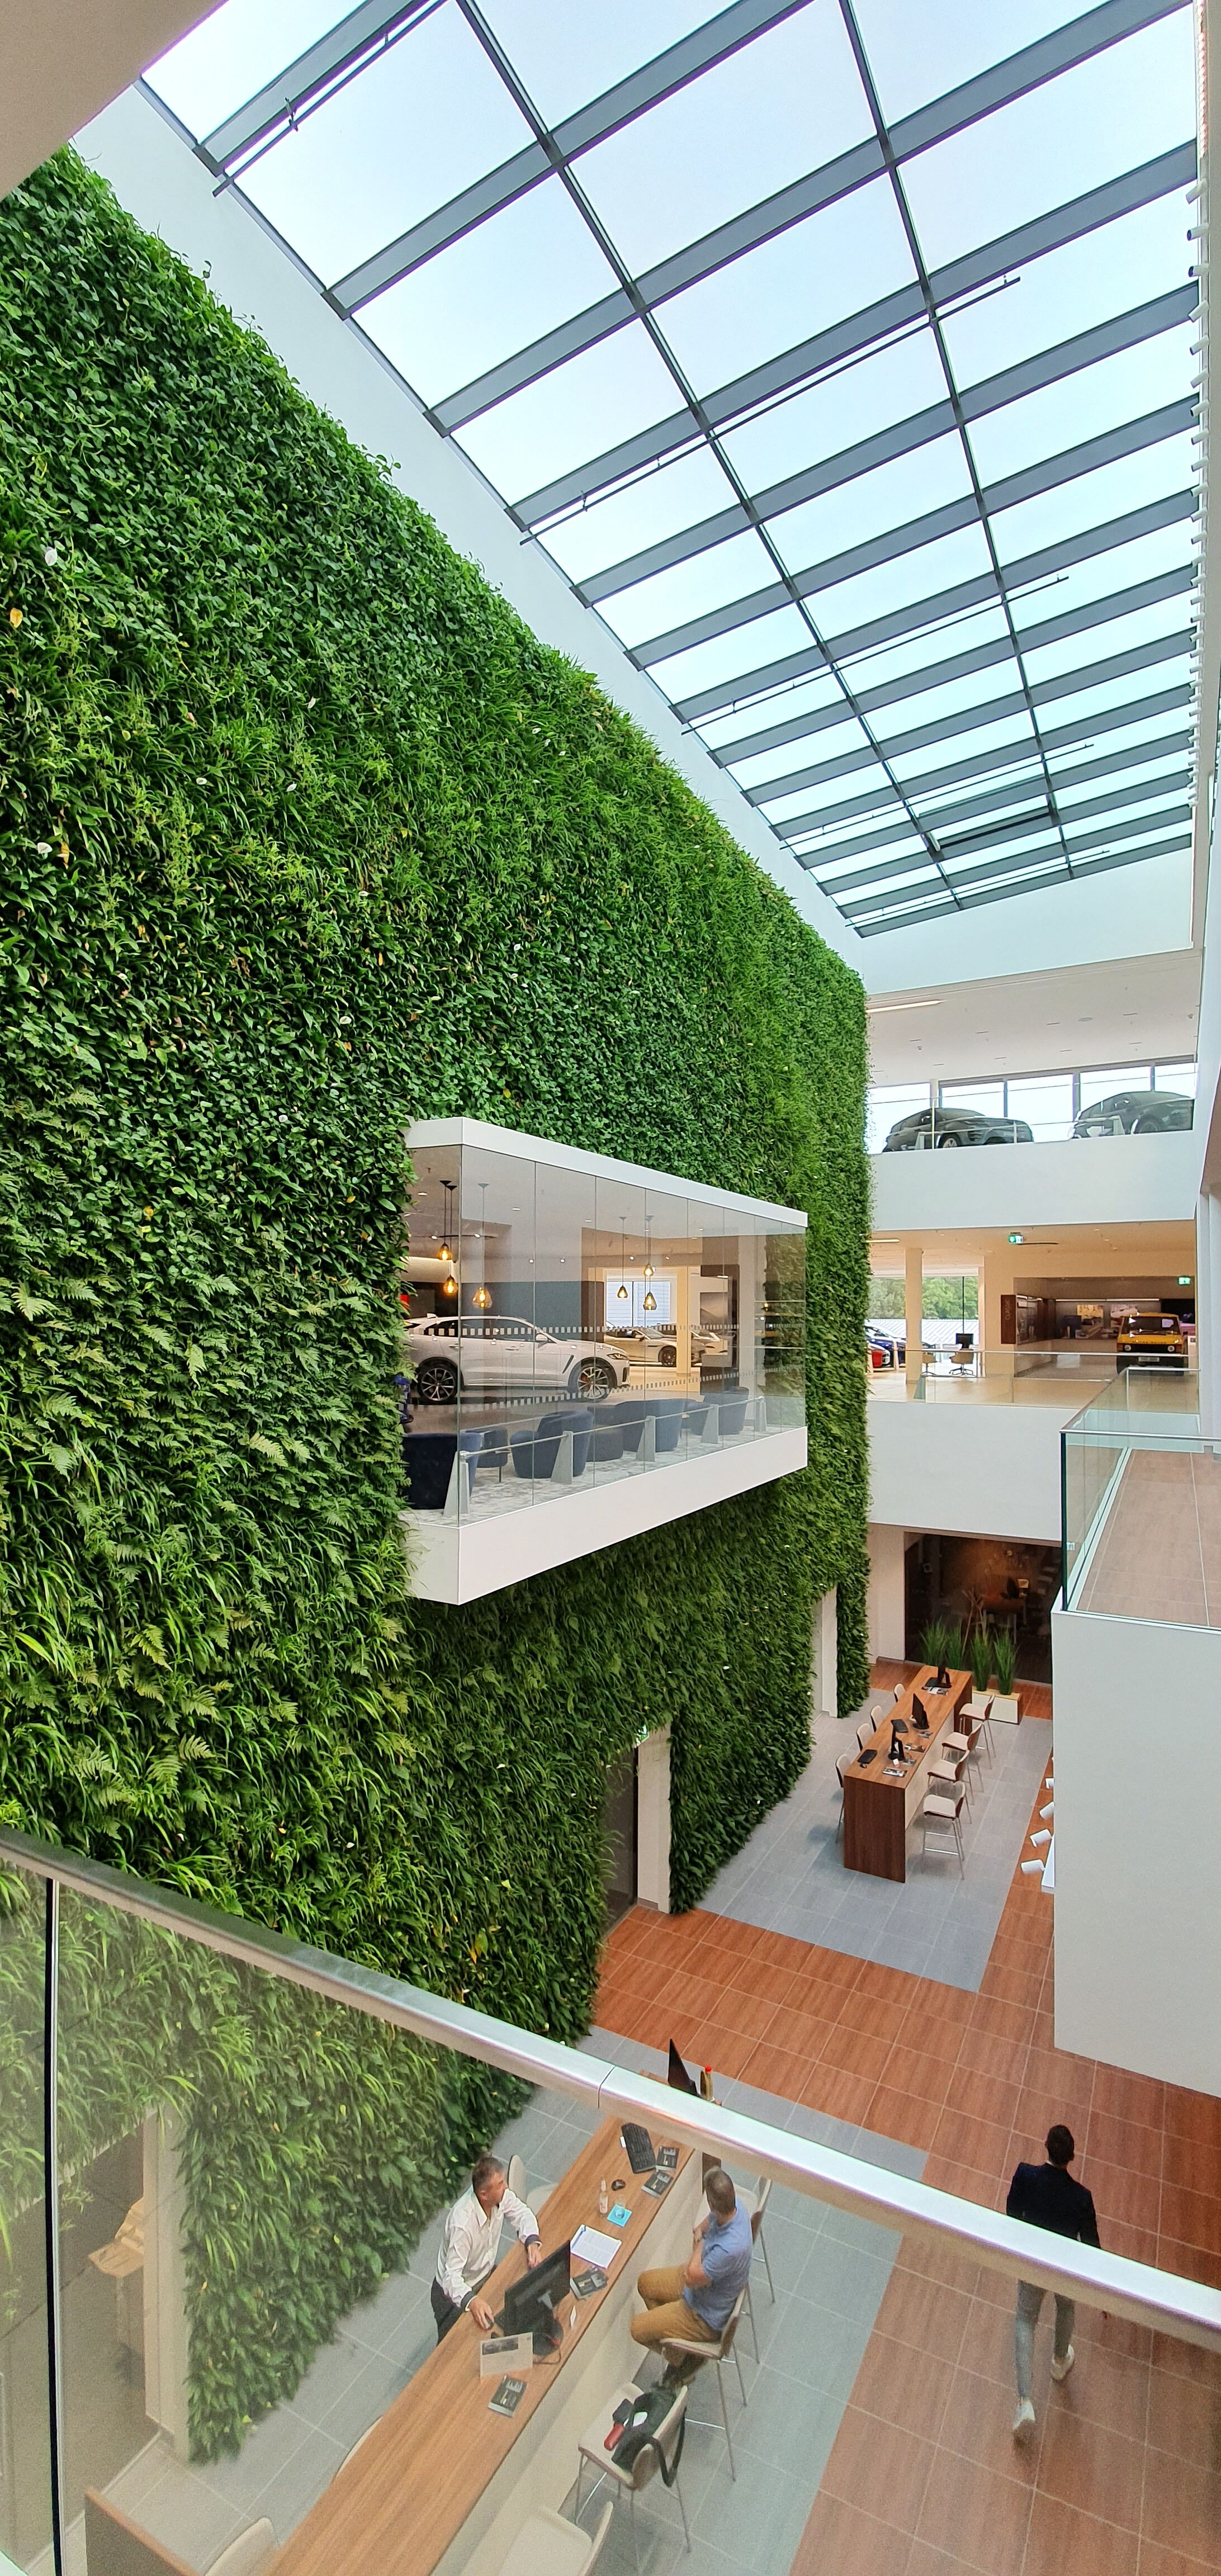 JLR Living Wall reception 2.jpg